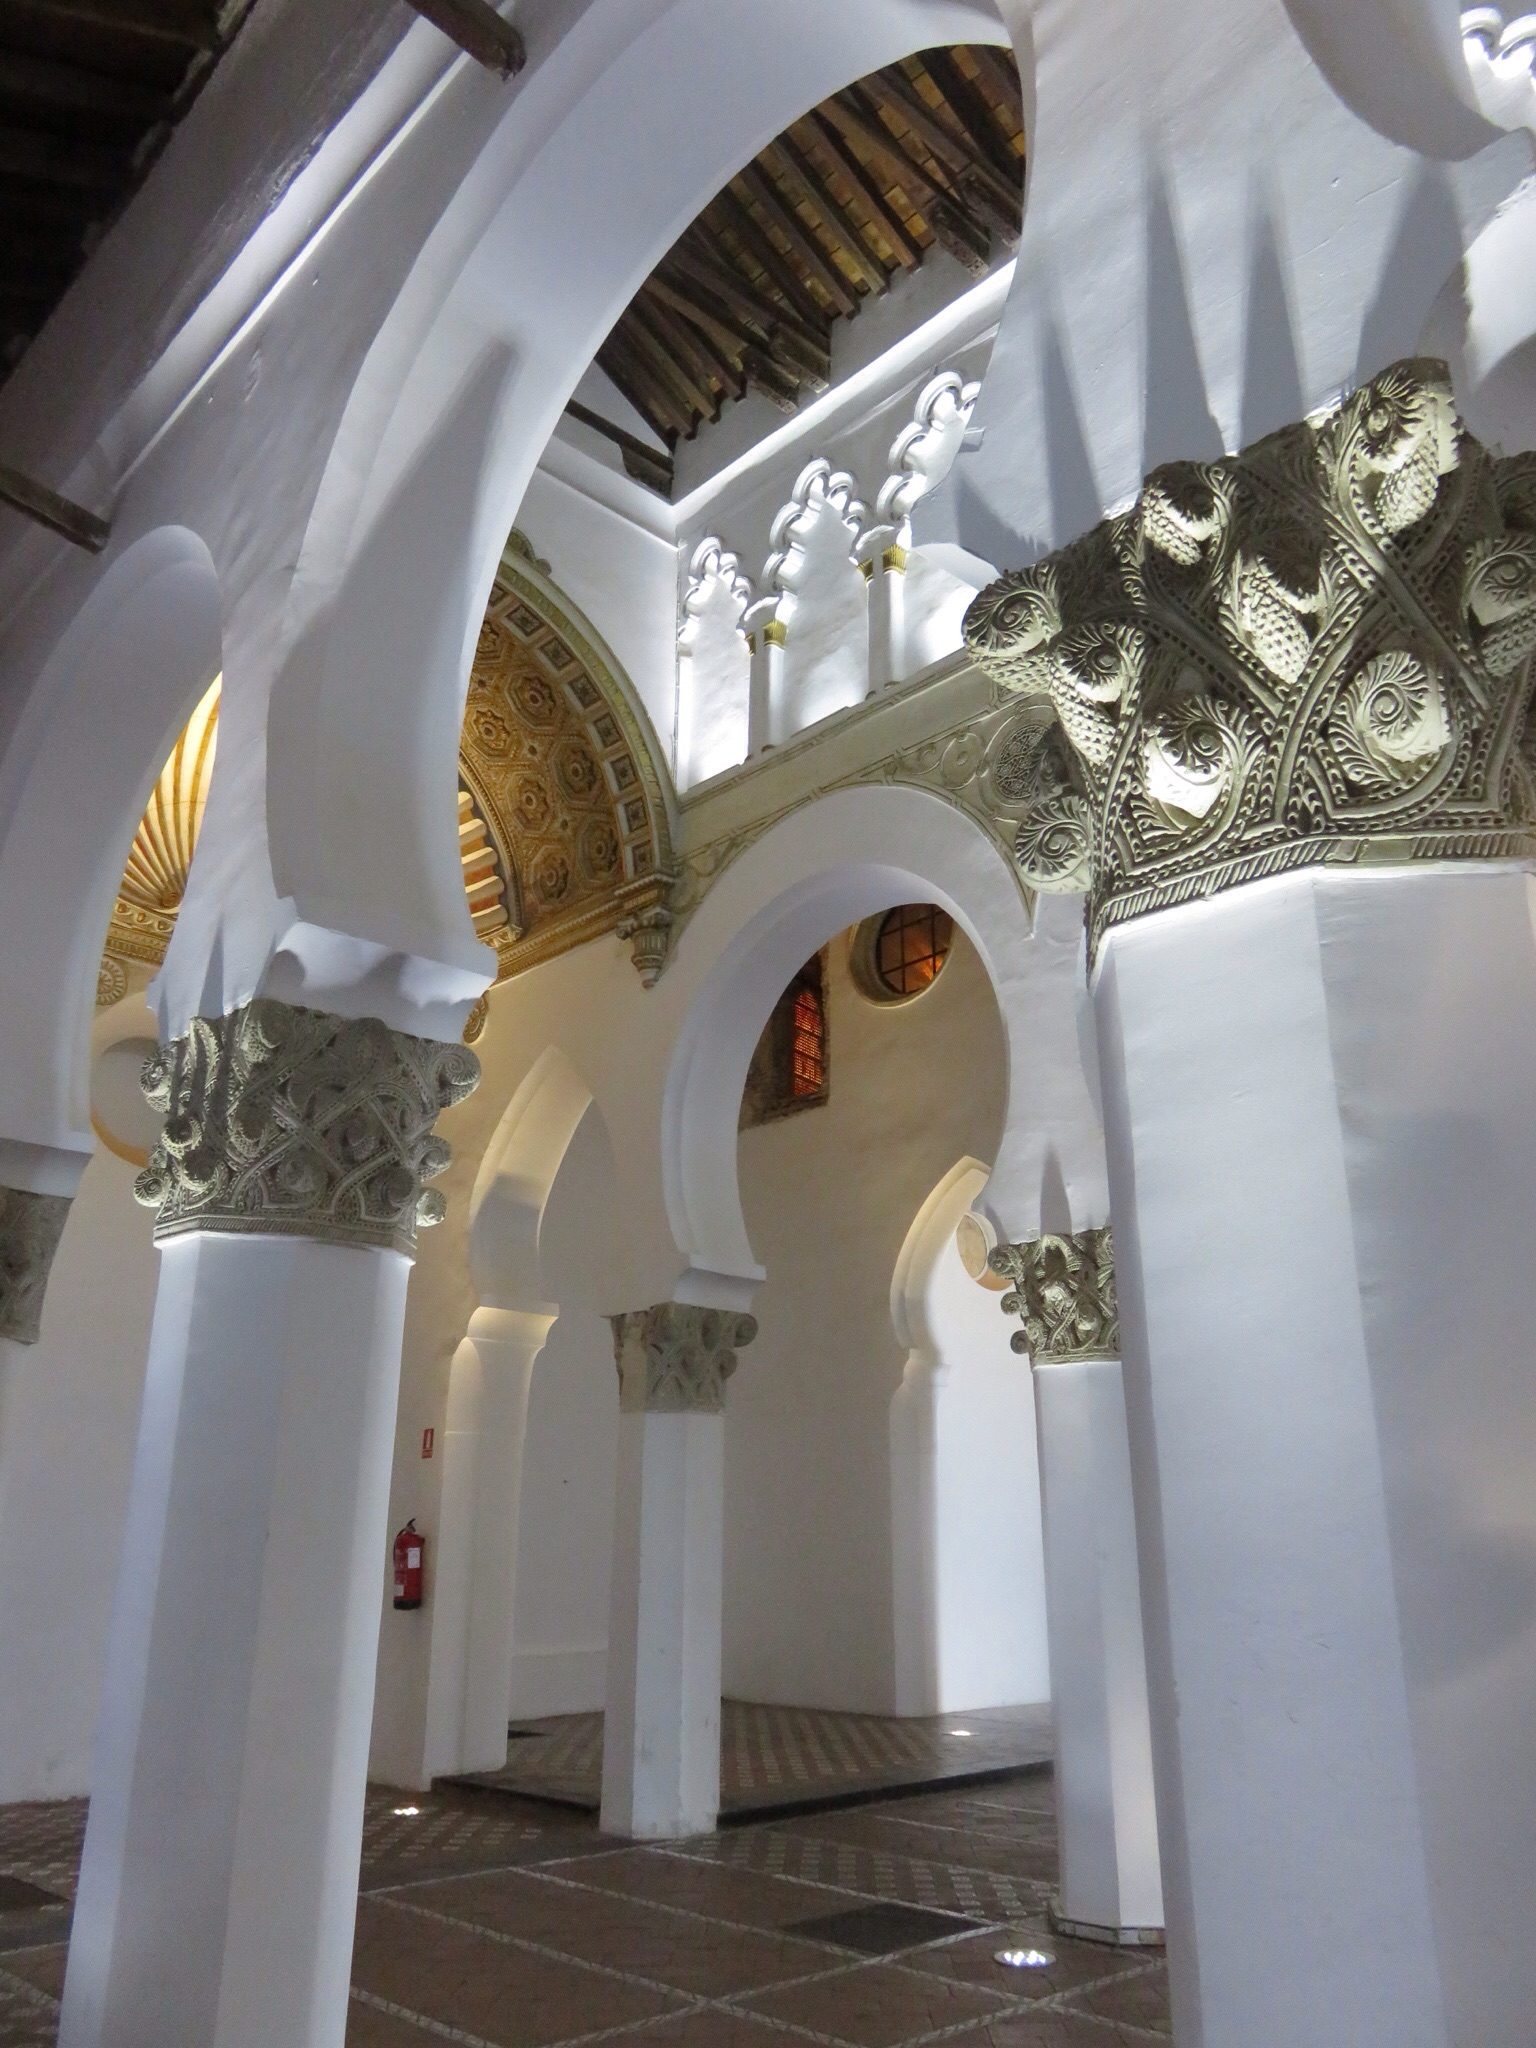 Synagogue de Santa Maria la Blanca, built by Muslim craftsmen around 1200, then became a church in 1492 -- later used as horse stables by Napoleon's troops.